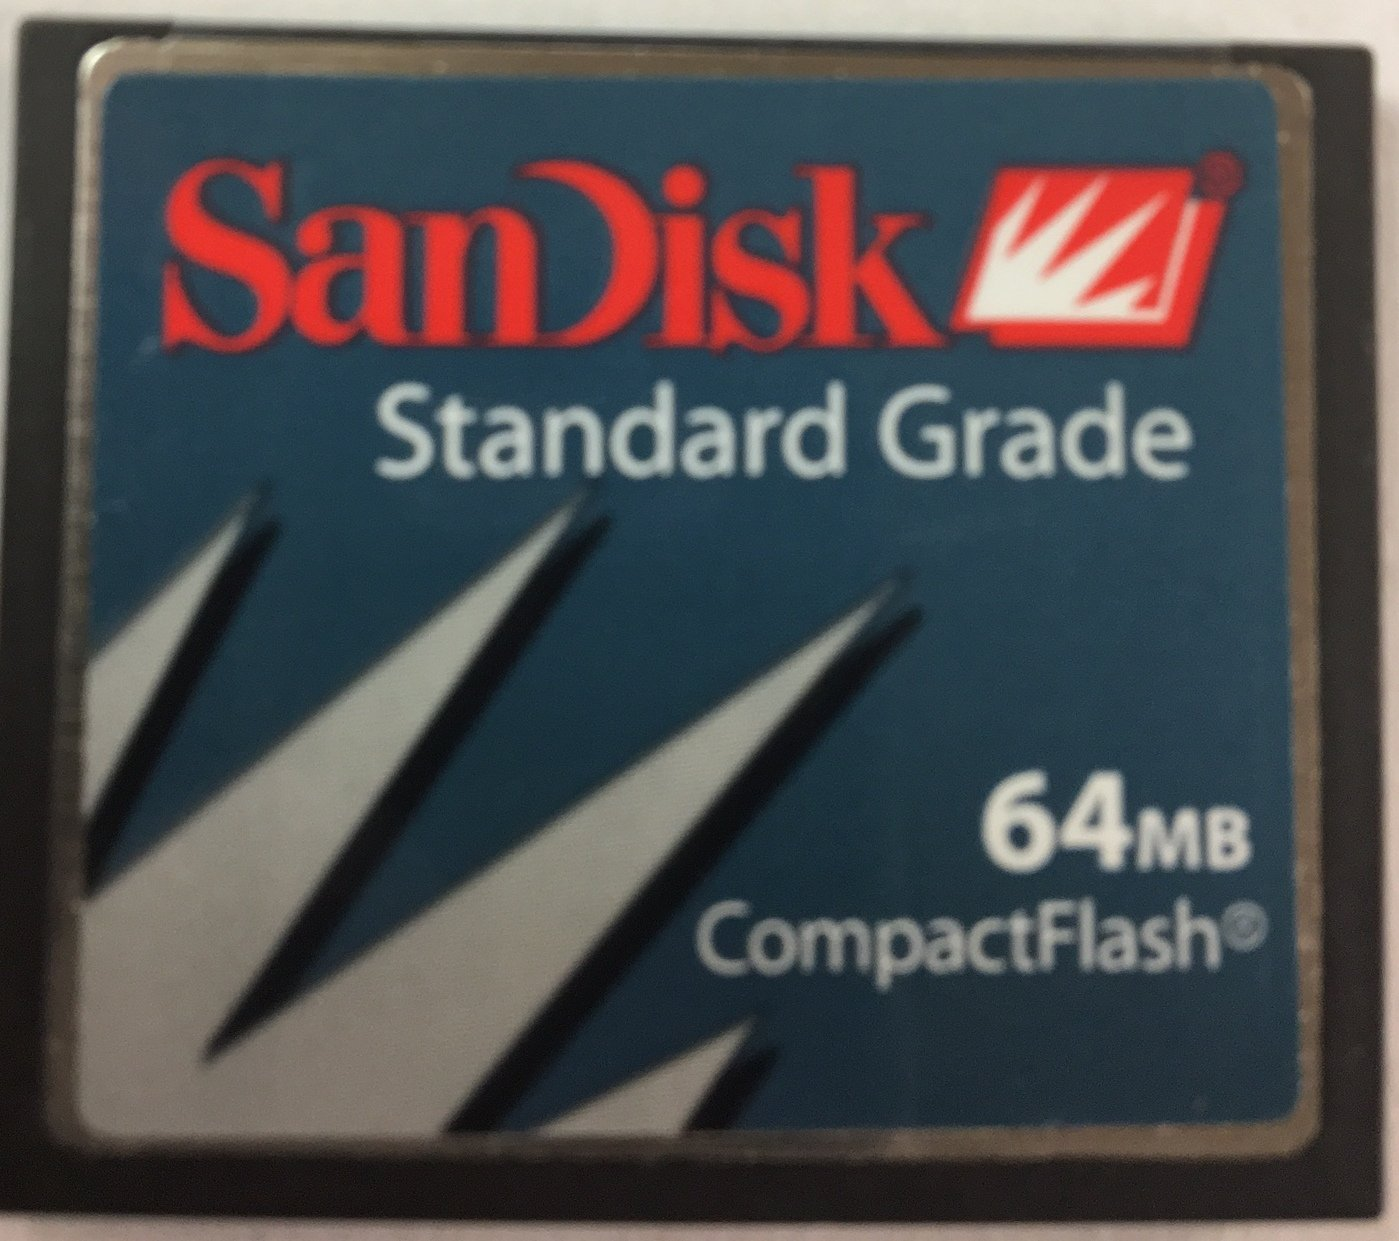 ScanDisk 64MB Compact Flash